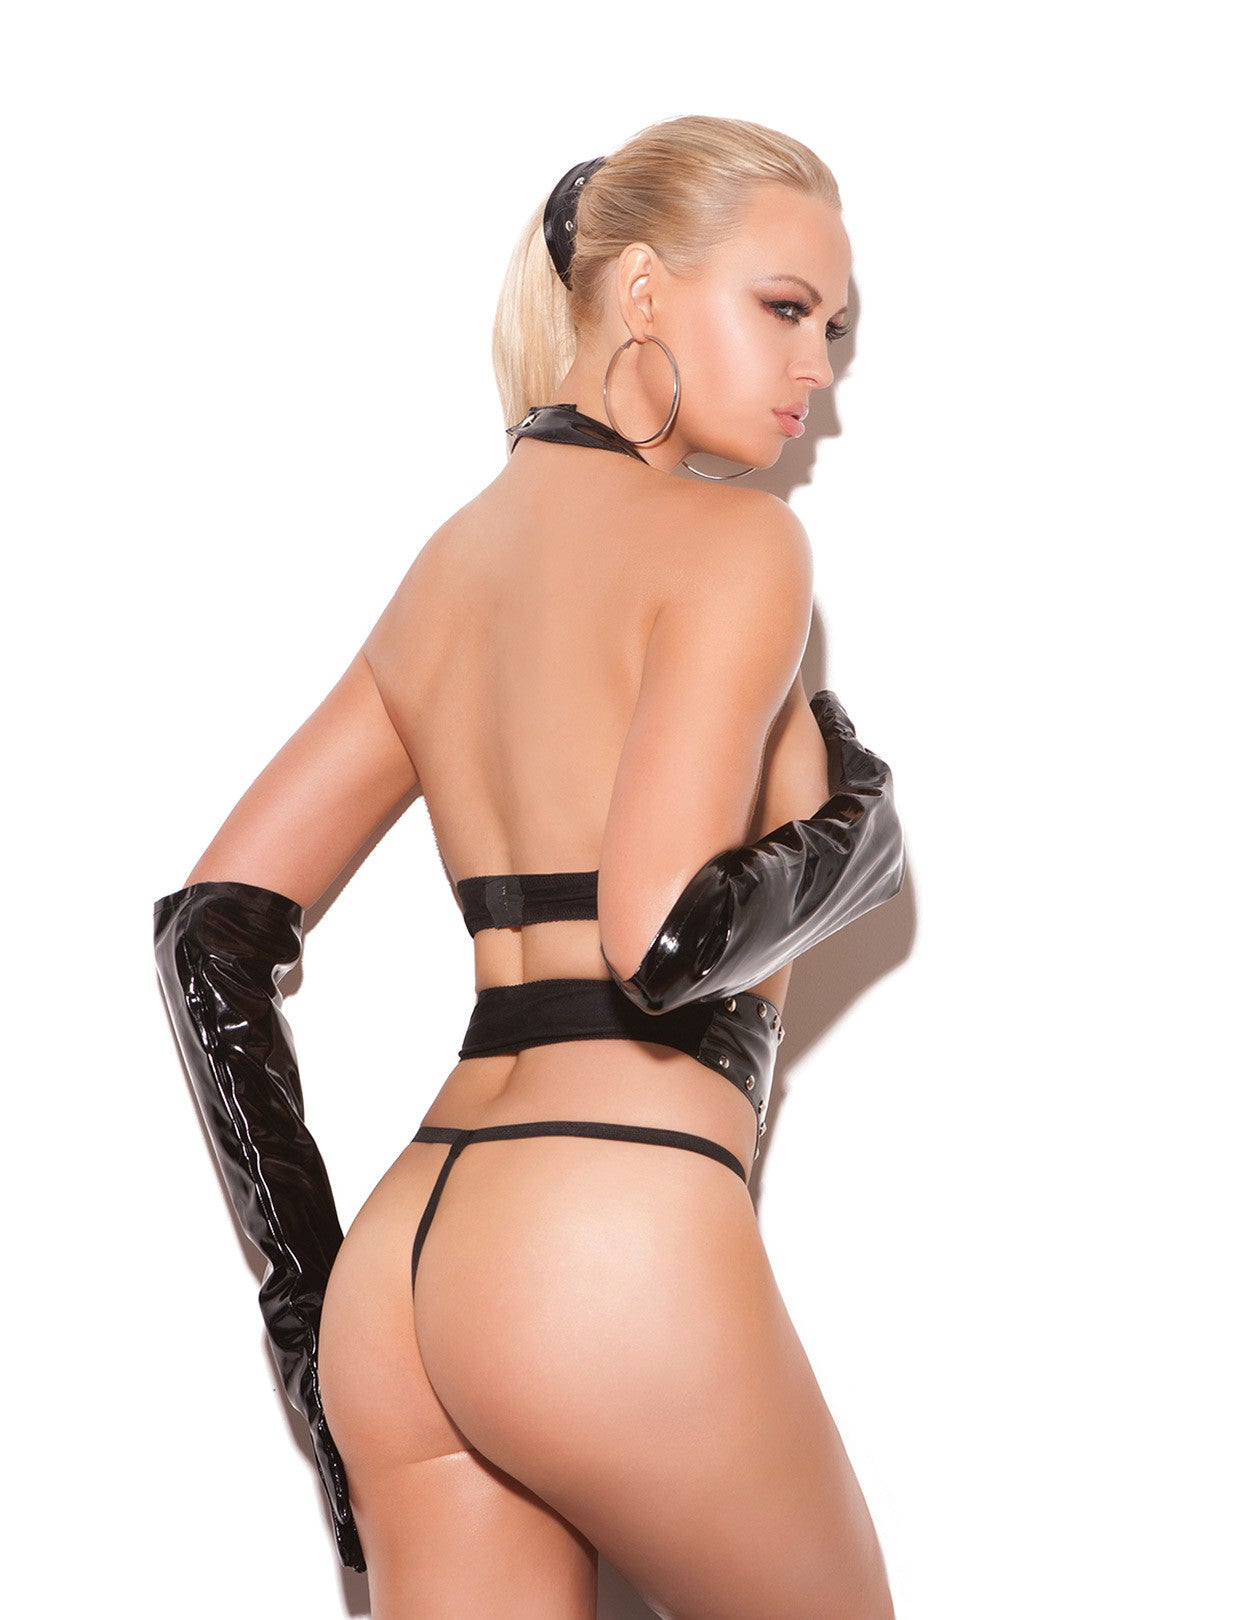 Vinyl Studded Top, Waist Cincher and G-String